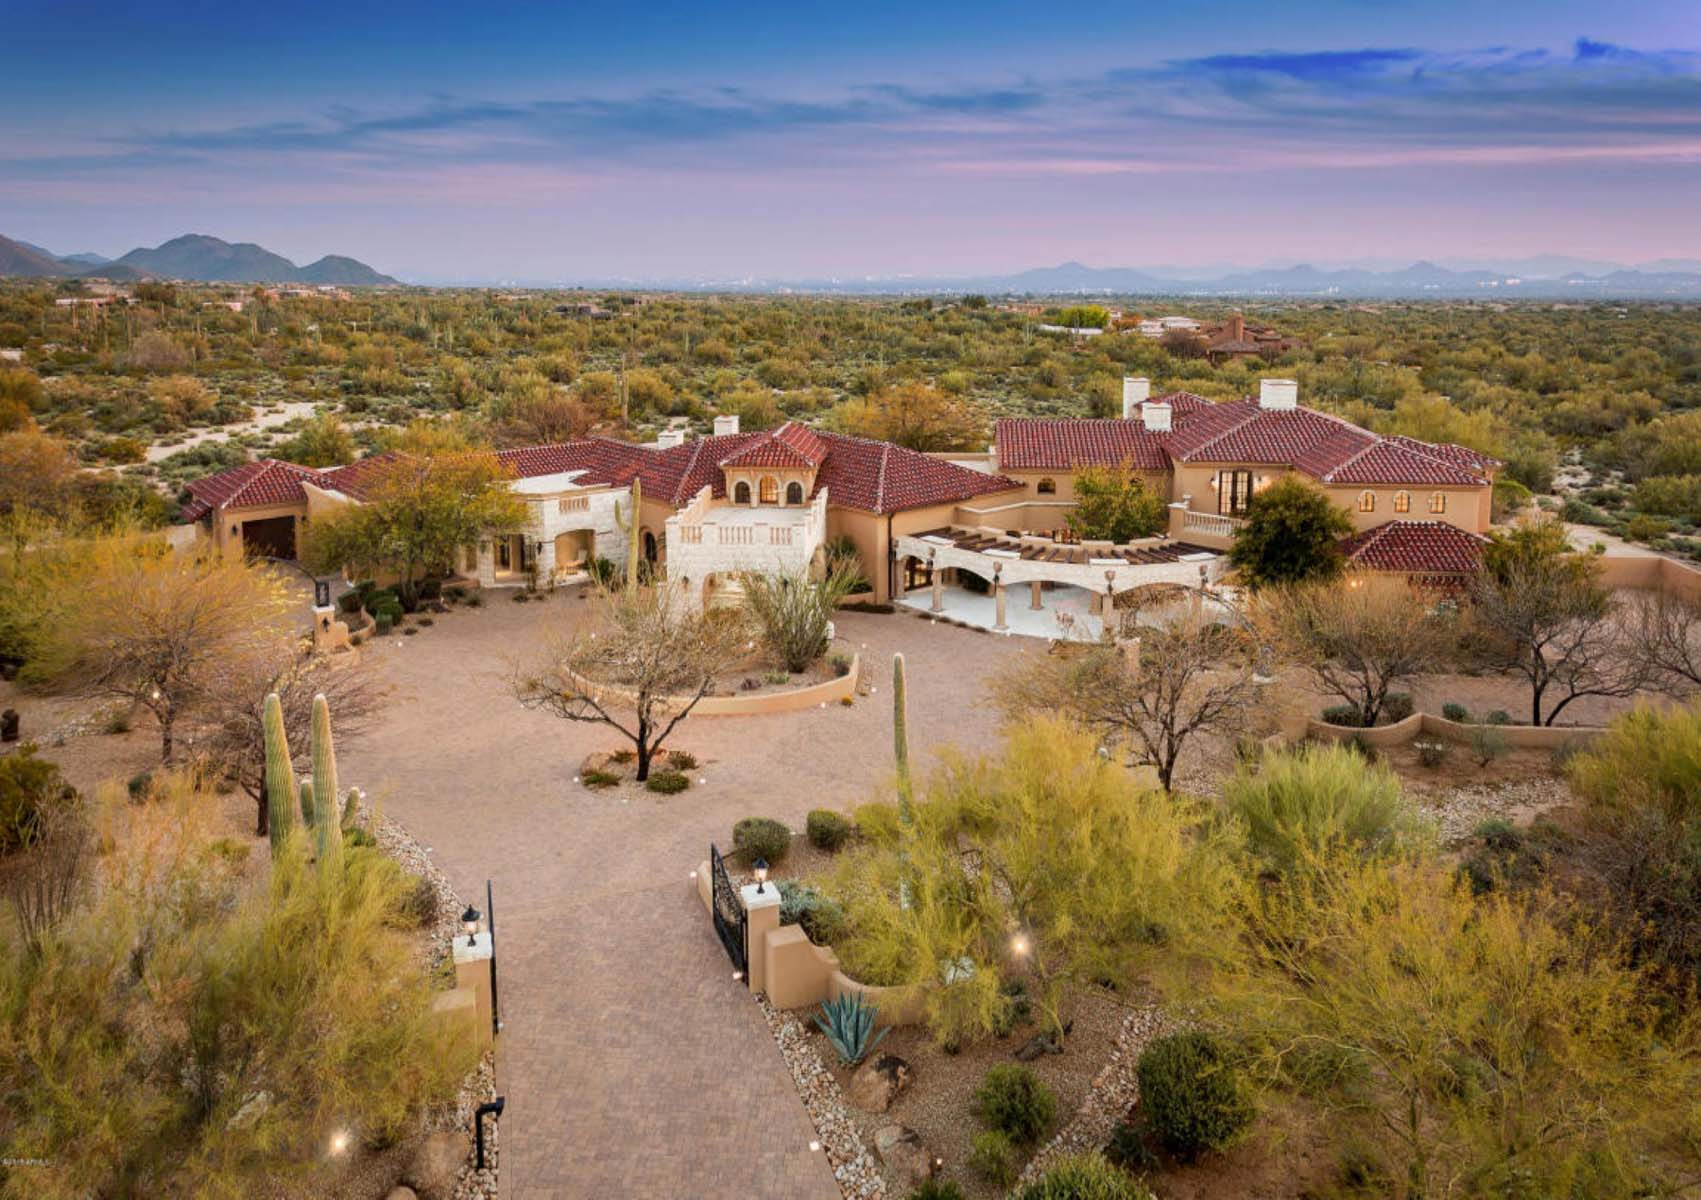 Single Family Home for Sale at Emboldened with everything one could ever imagine in a home. 27929 N 91ST ST Scottsdale, Arizona 85262 United States